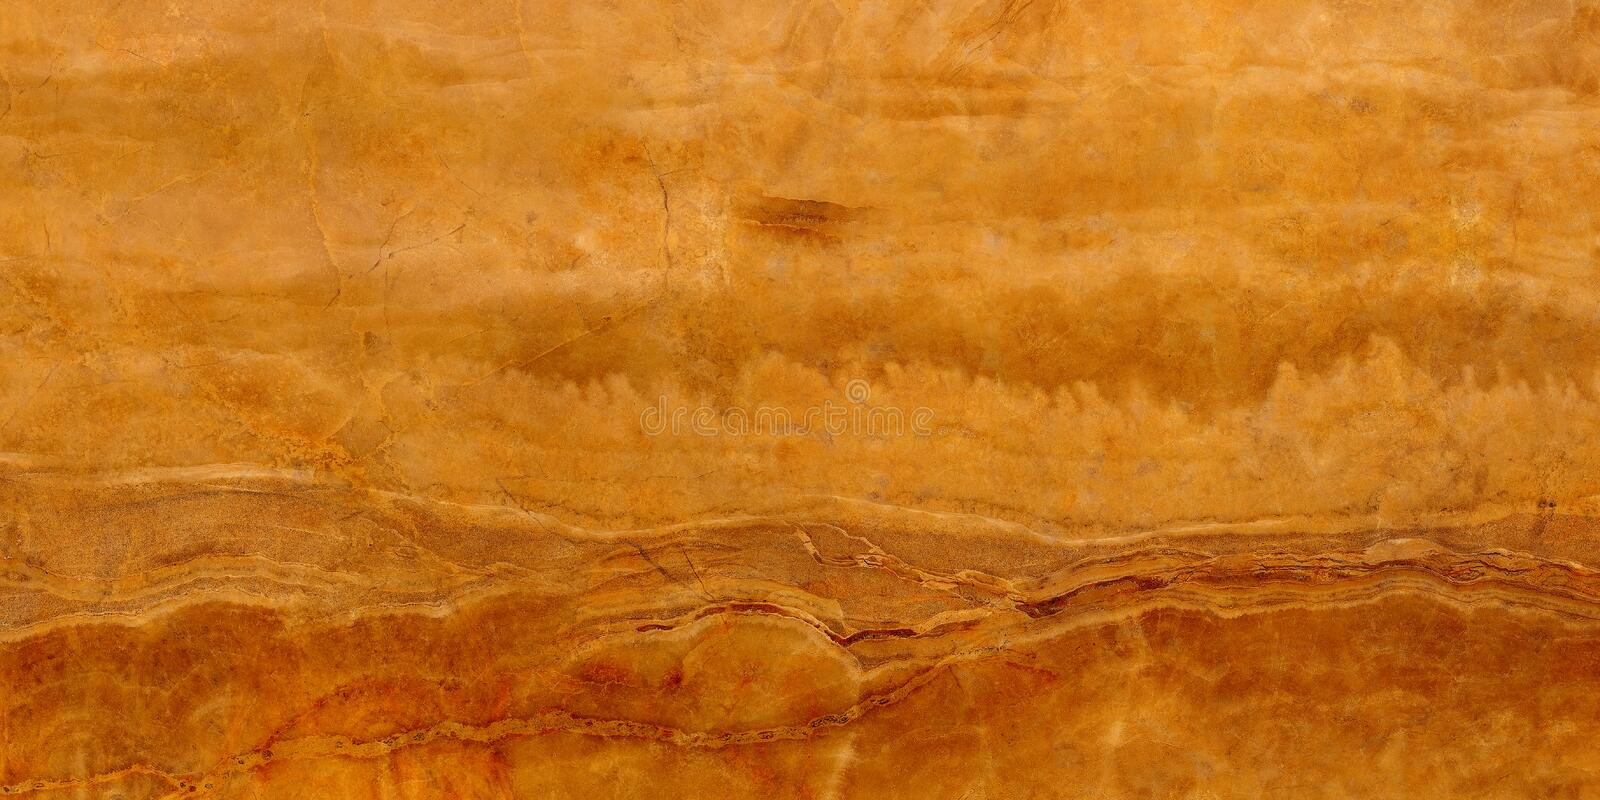 Translucent mineral onyx stone macro texture. Slice of natural agate stone for patterns and textures close up royalty free stock photo